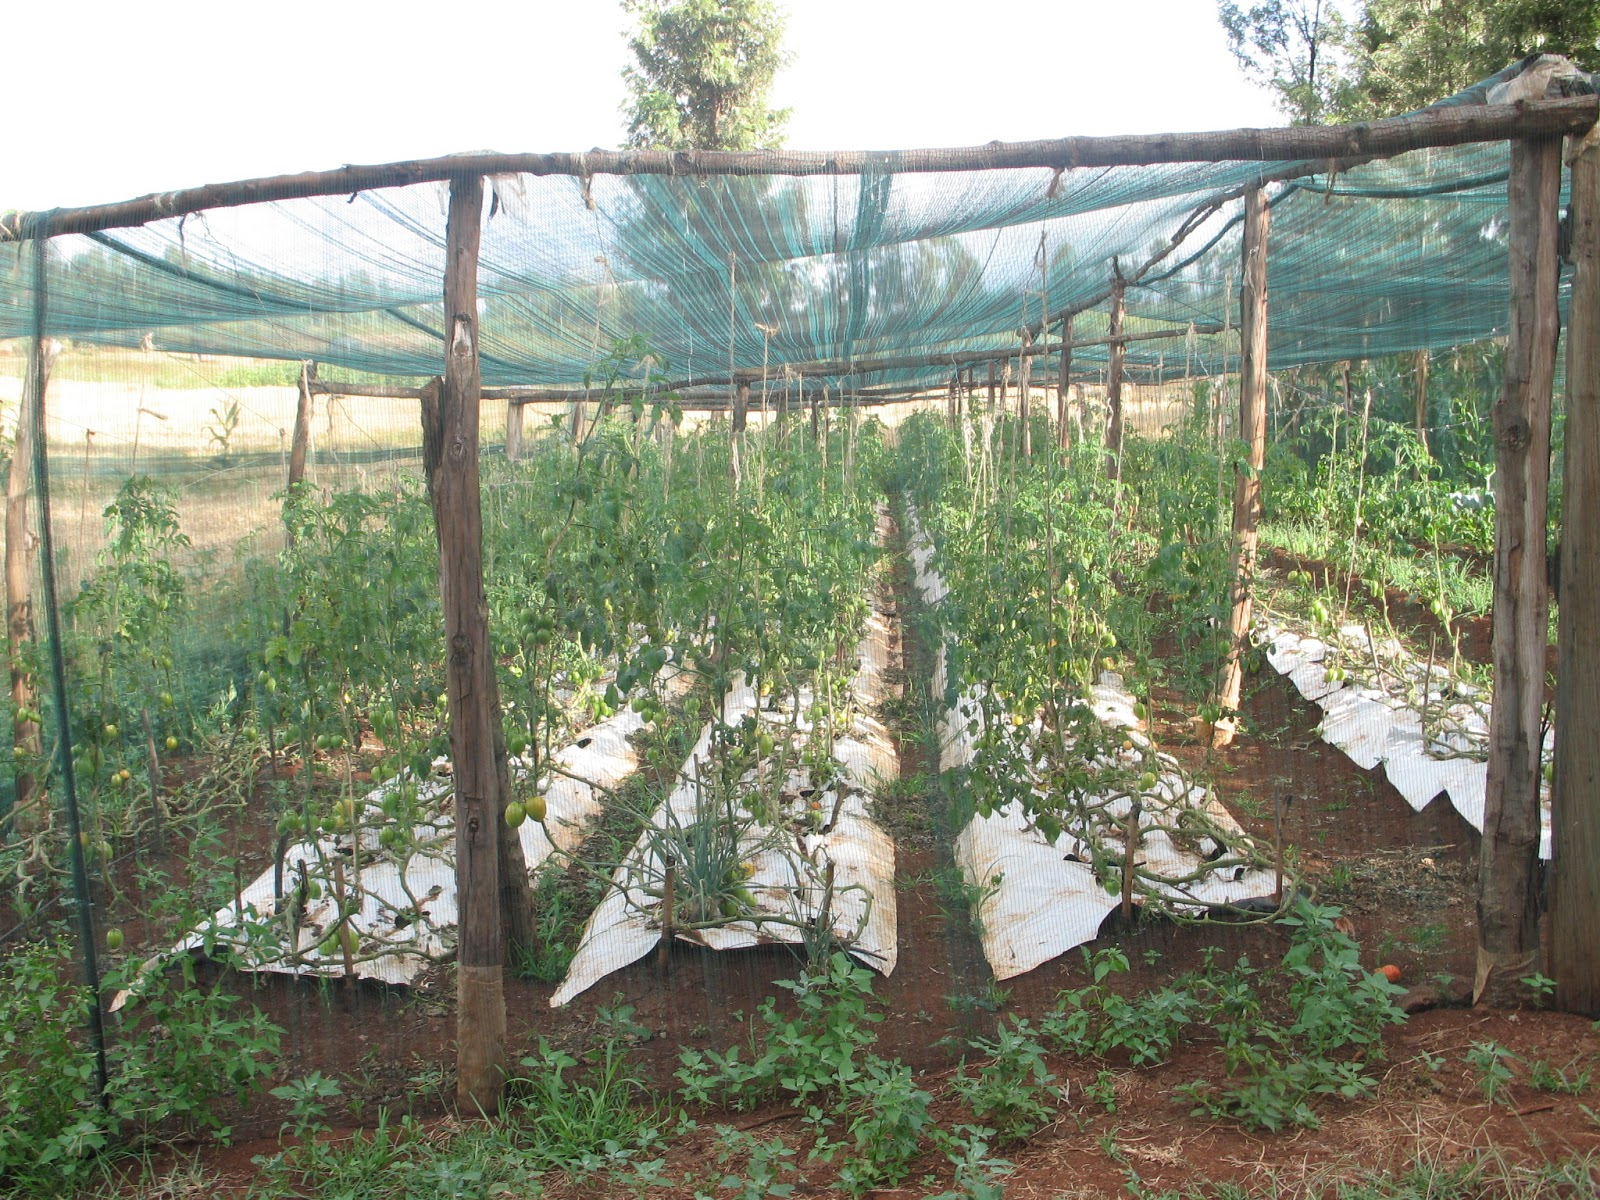 Good The Tomatoes Were Mulched With Co Extruded Plastic Mulch Which Reduces The  Water Evaporation And The Weeds. The Garden Also Included Onions, Green  Peppers ...